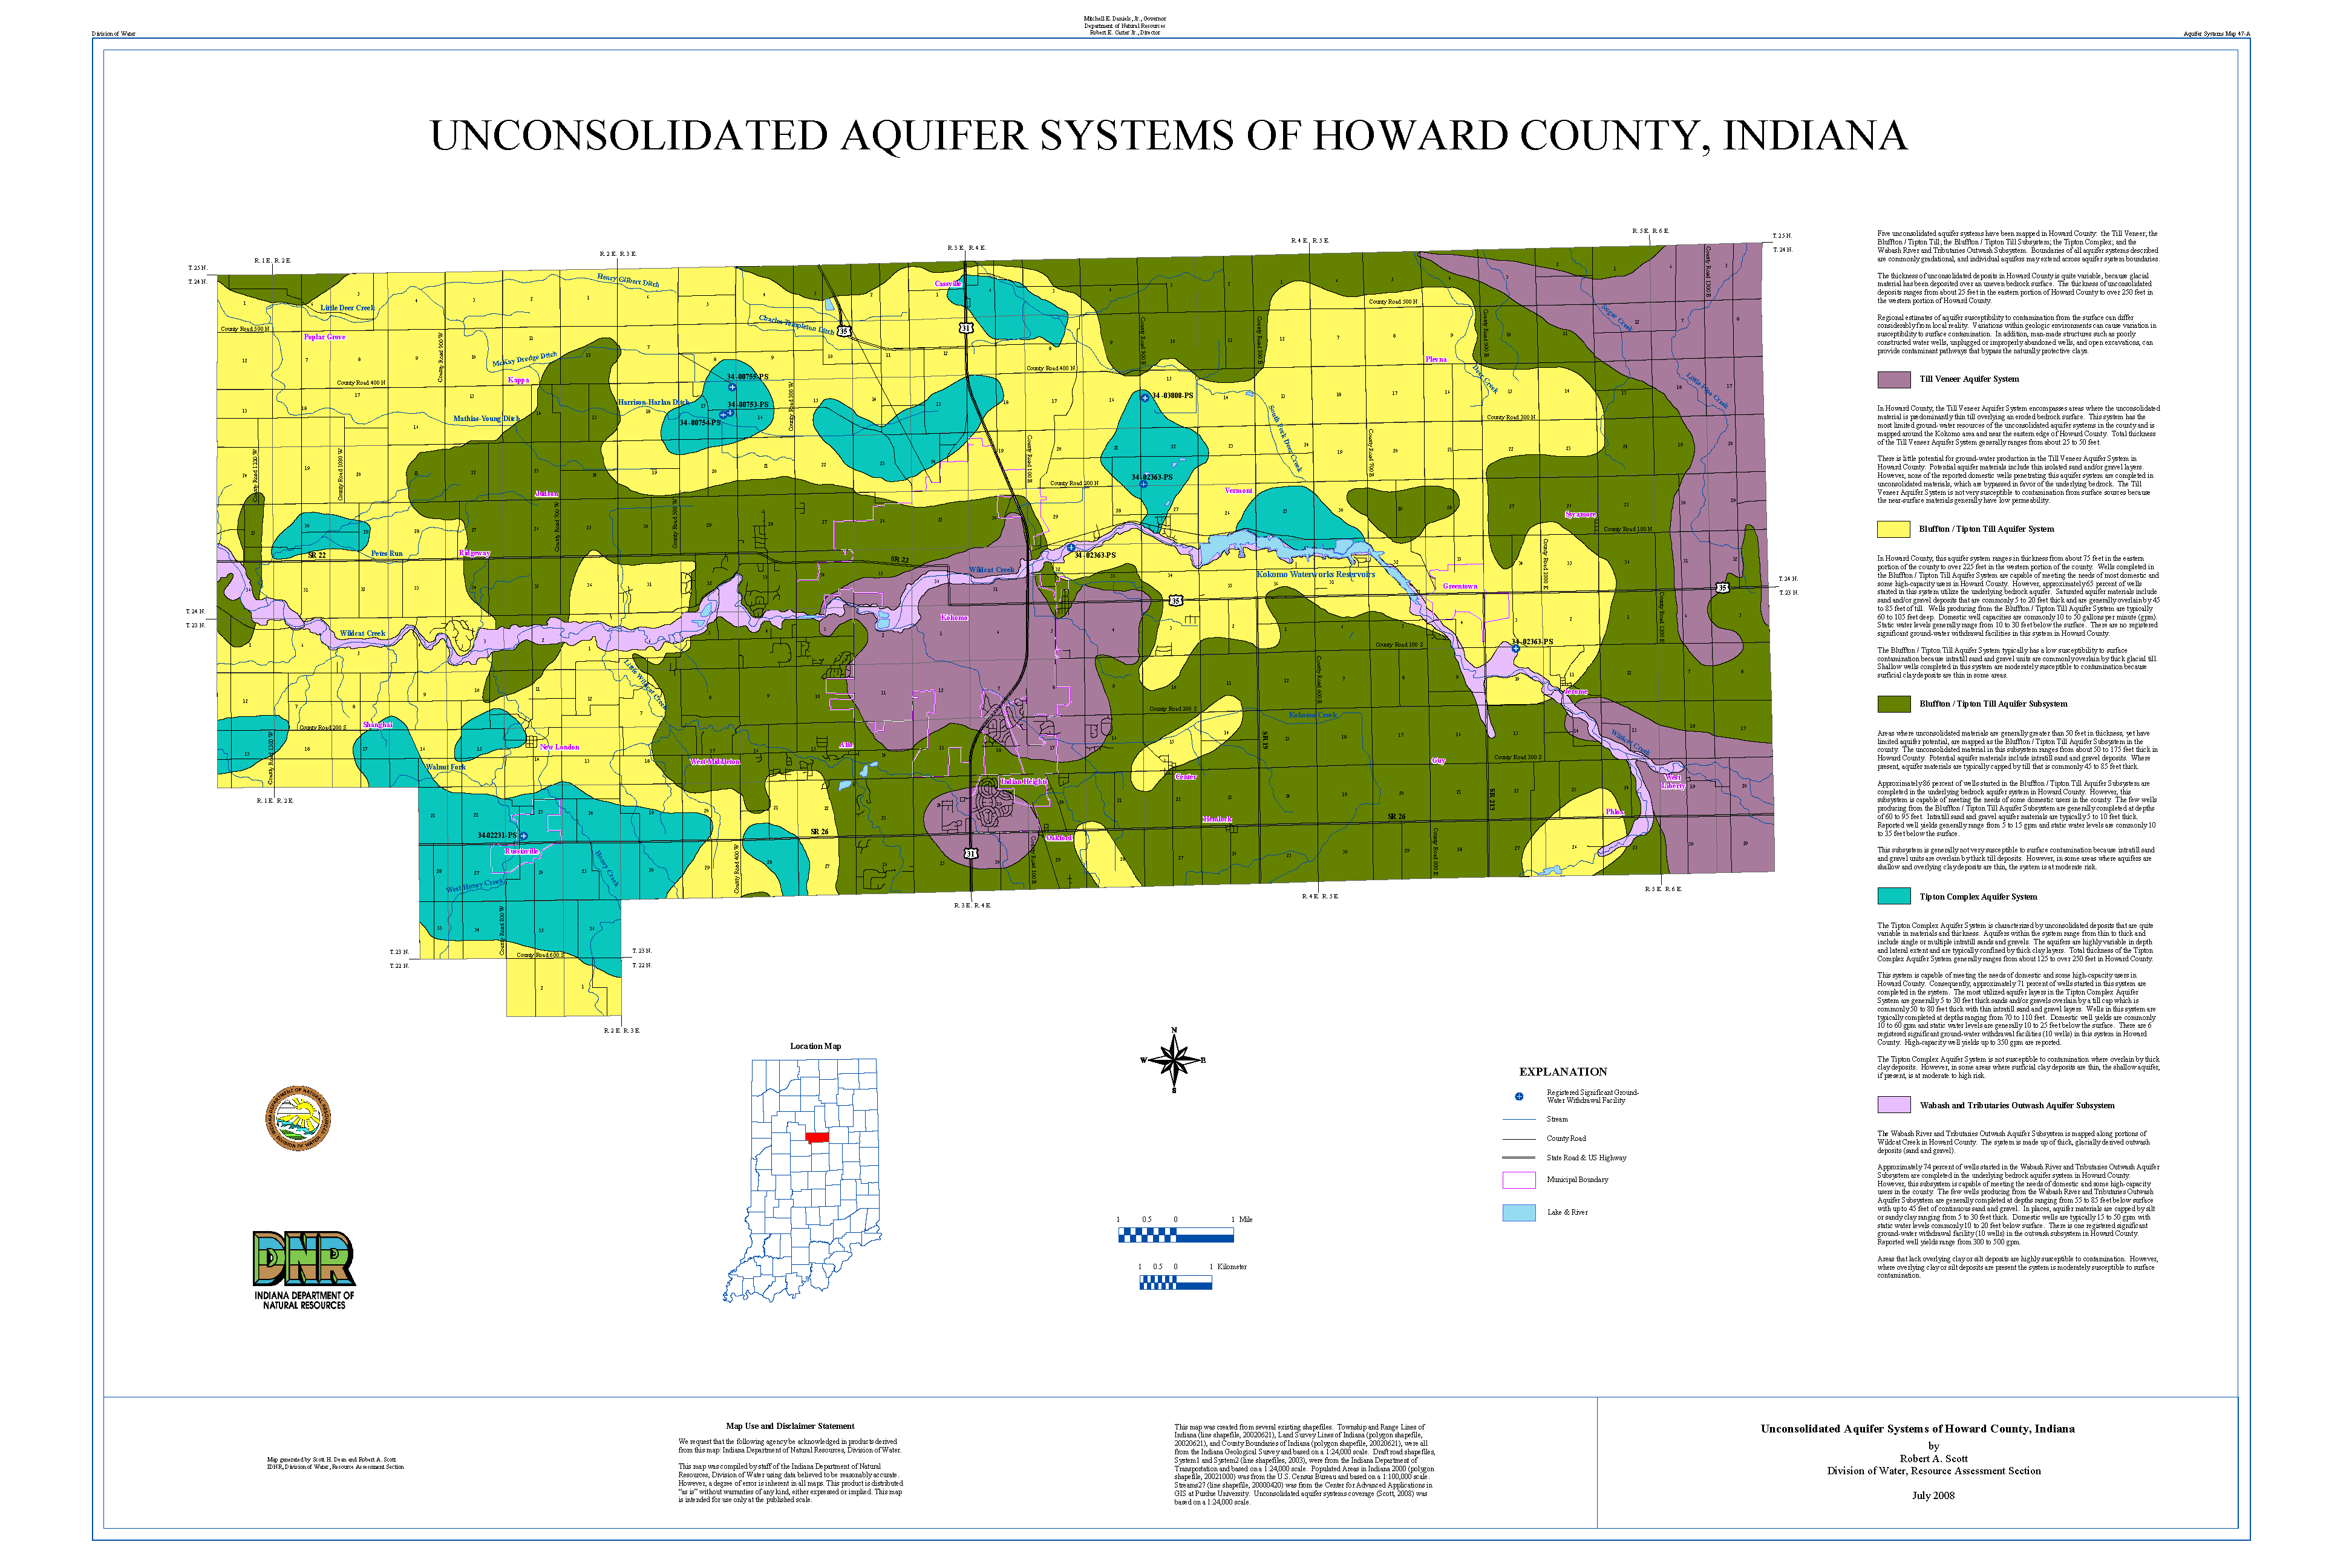 Howard County Indiana Map.Dnr Aquifer Systems Maps 47 A And 47 B Unconsolidated And Bedrock